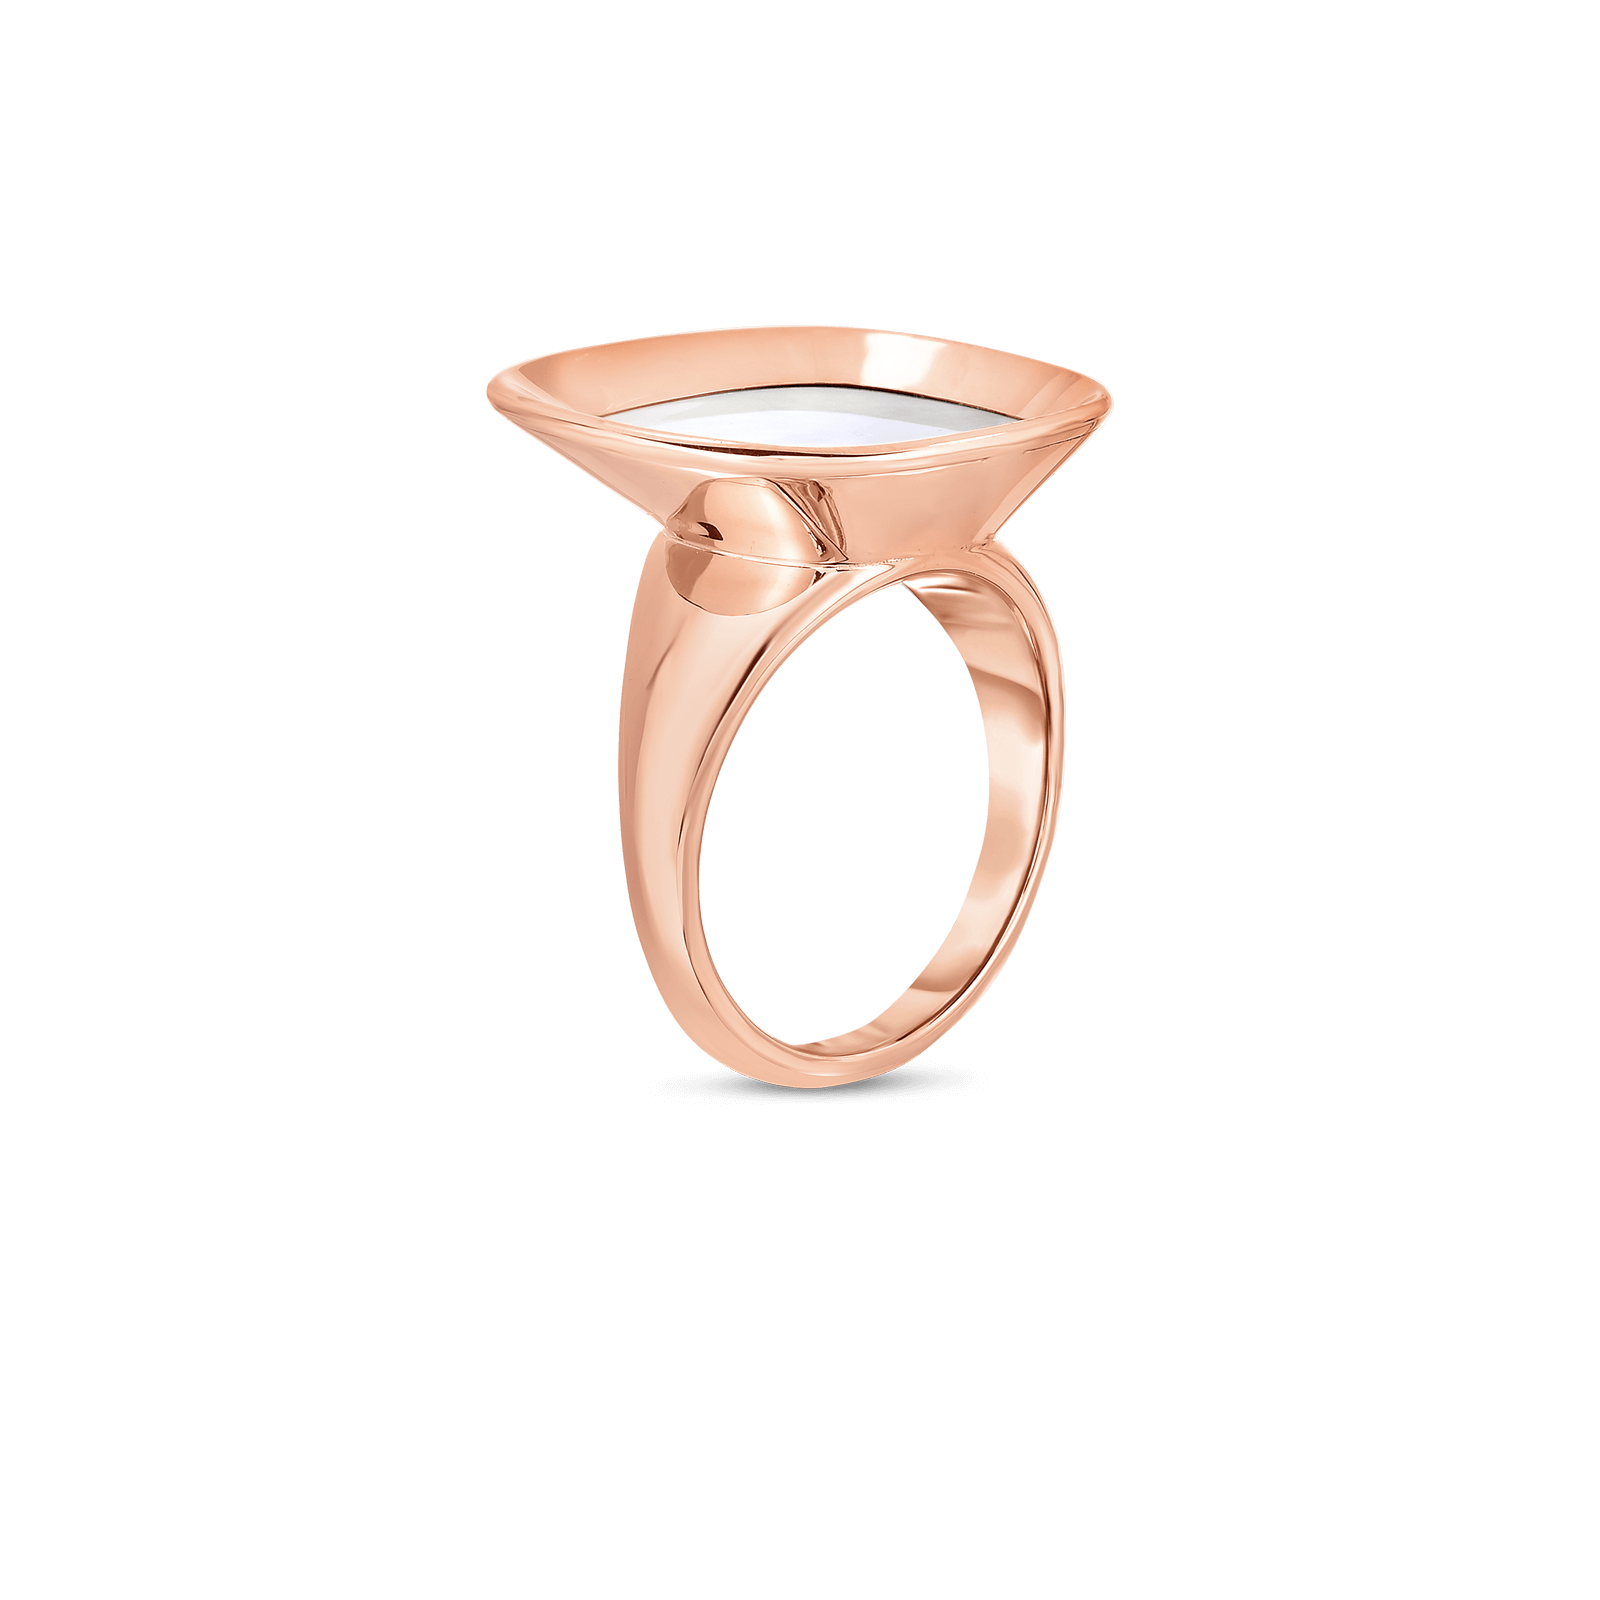 Roberto-Coin-18k-rose-gold-Small Ring with Mother of Pearl-8882210AX65Malt